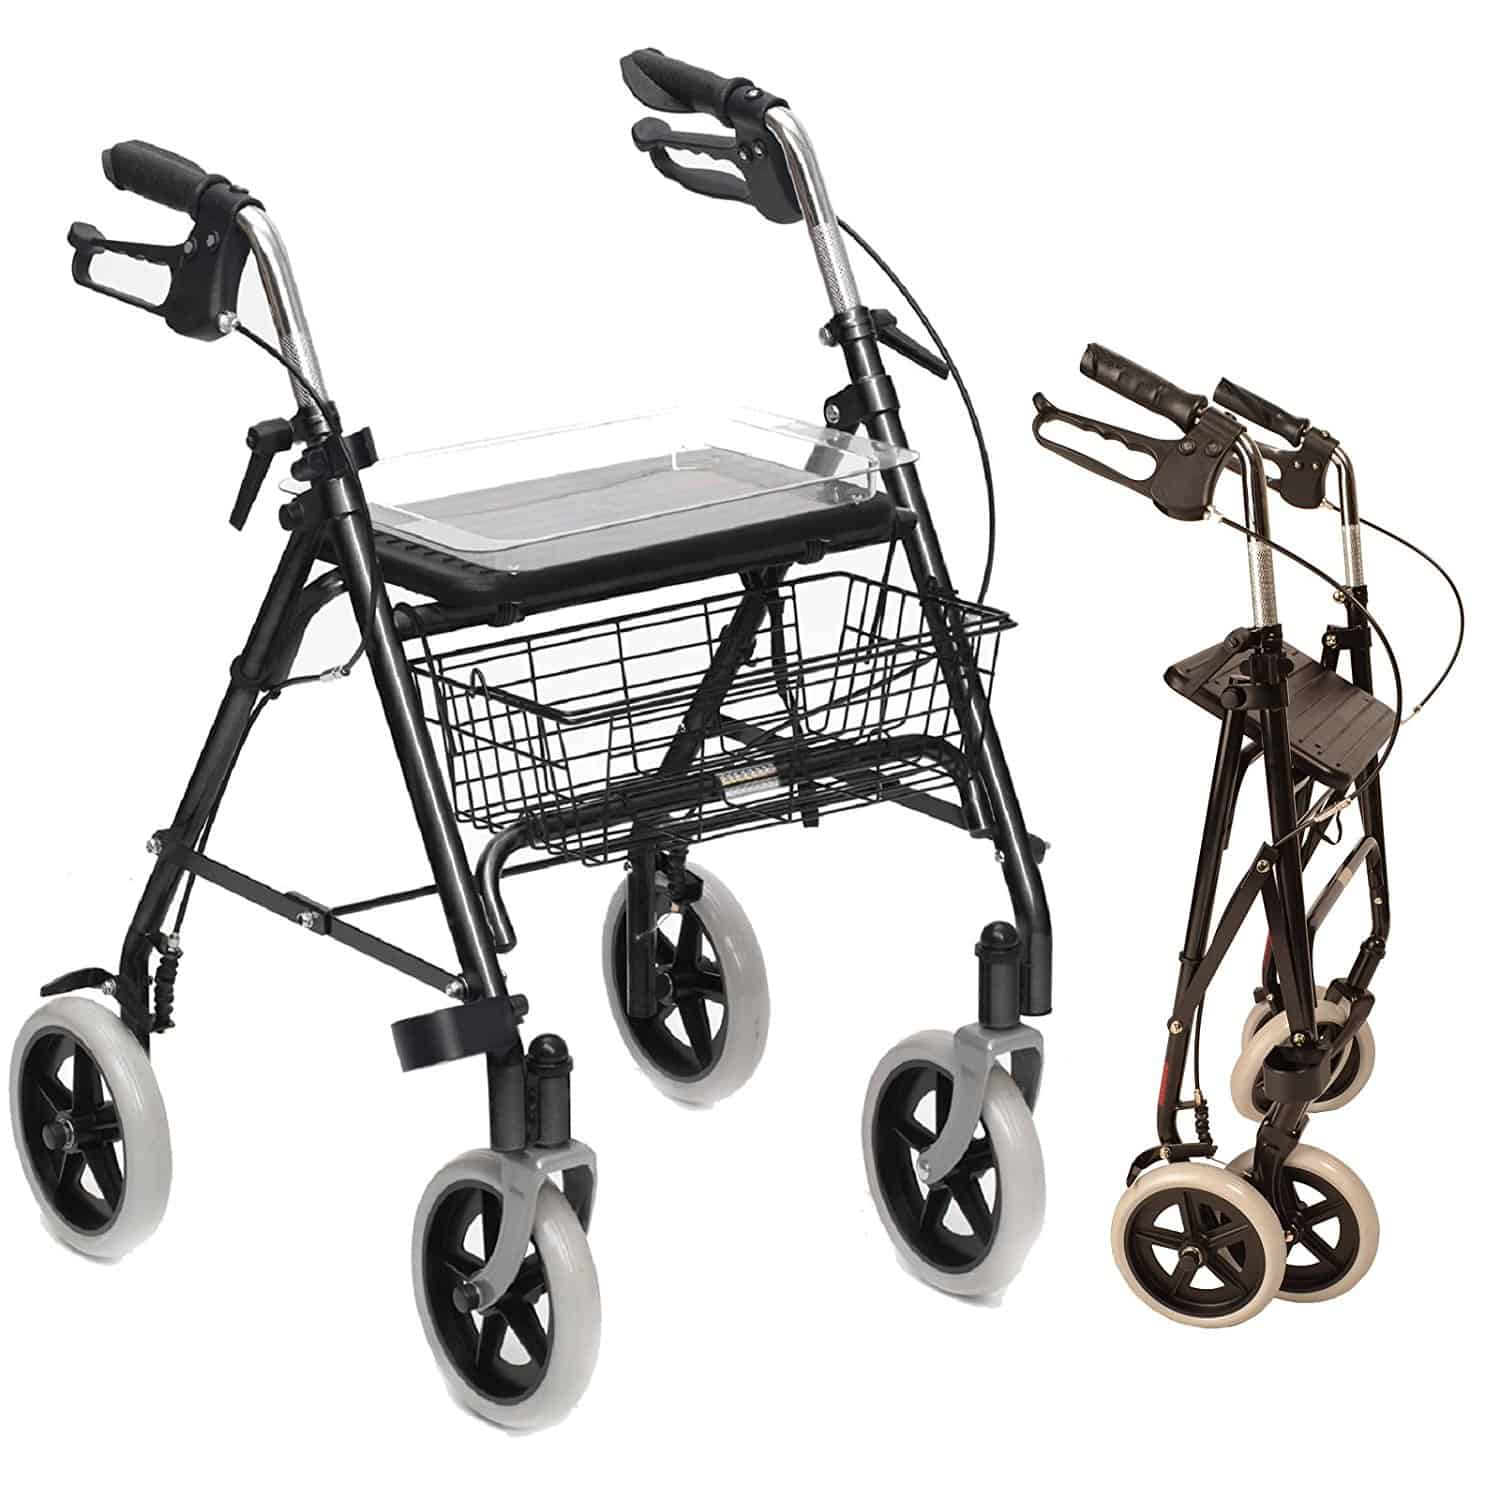 Folding Lightweight Rollator walking frame